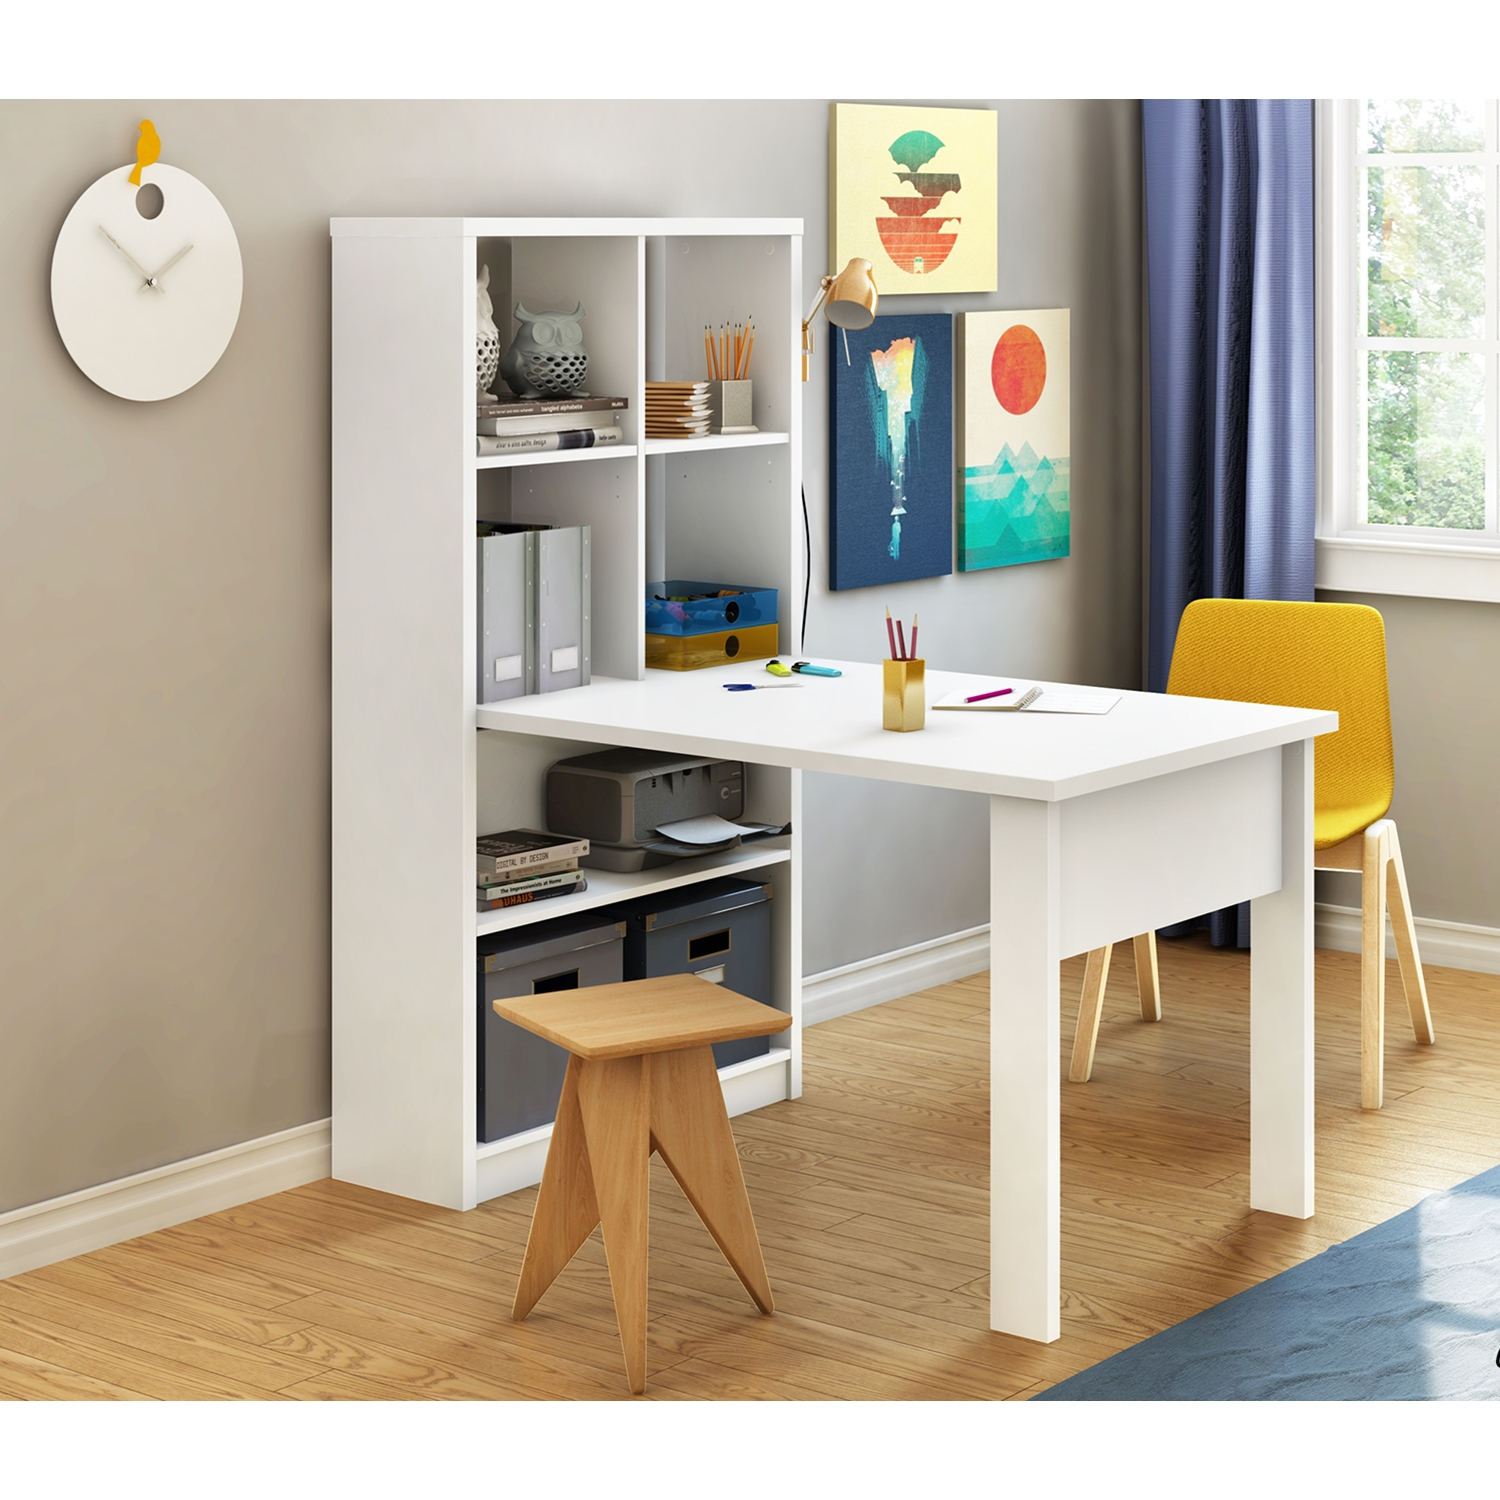 Annexe Work Table and Storage Unit Combo - Pure White - SS-7250798